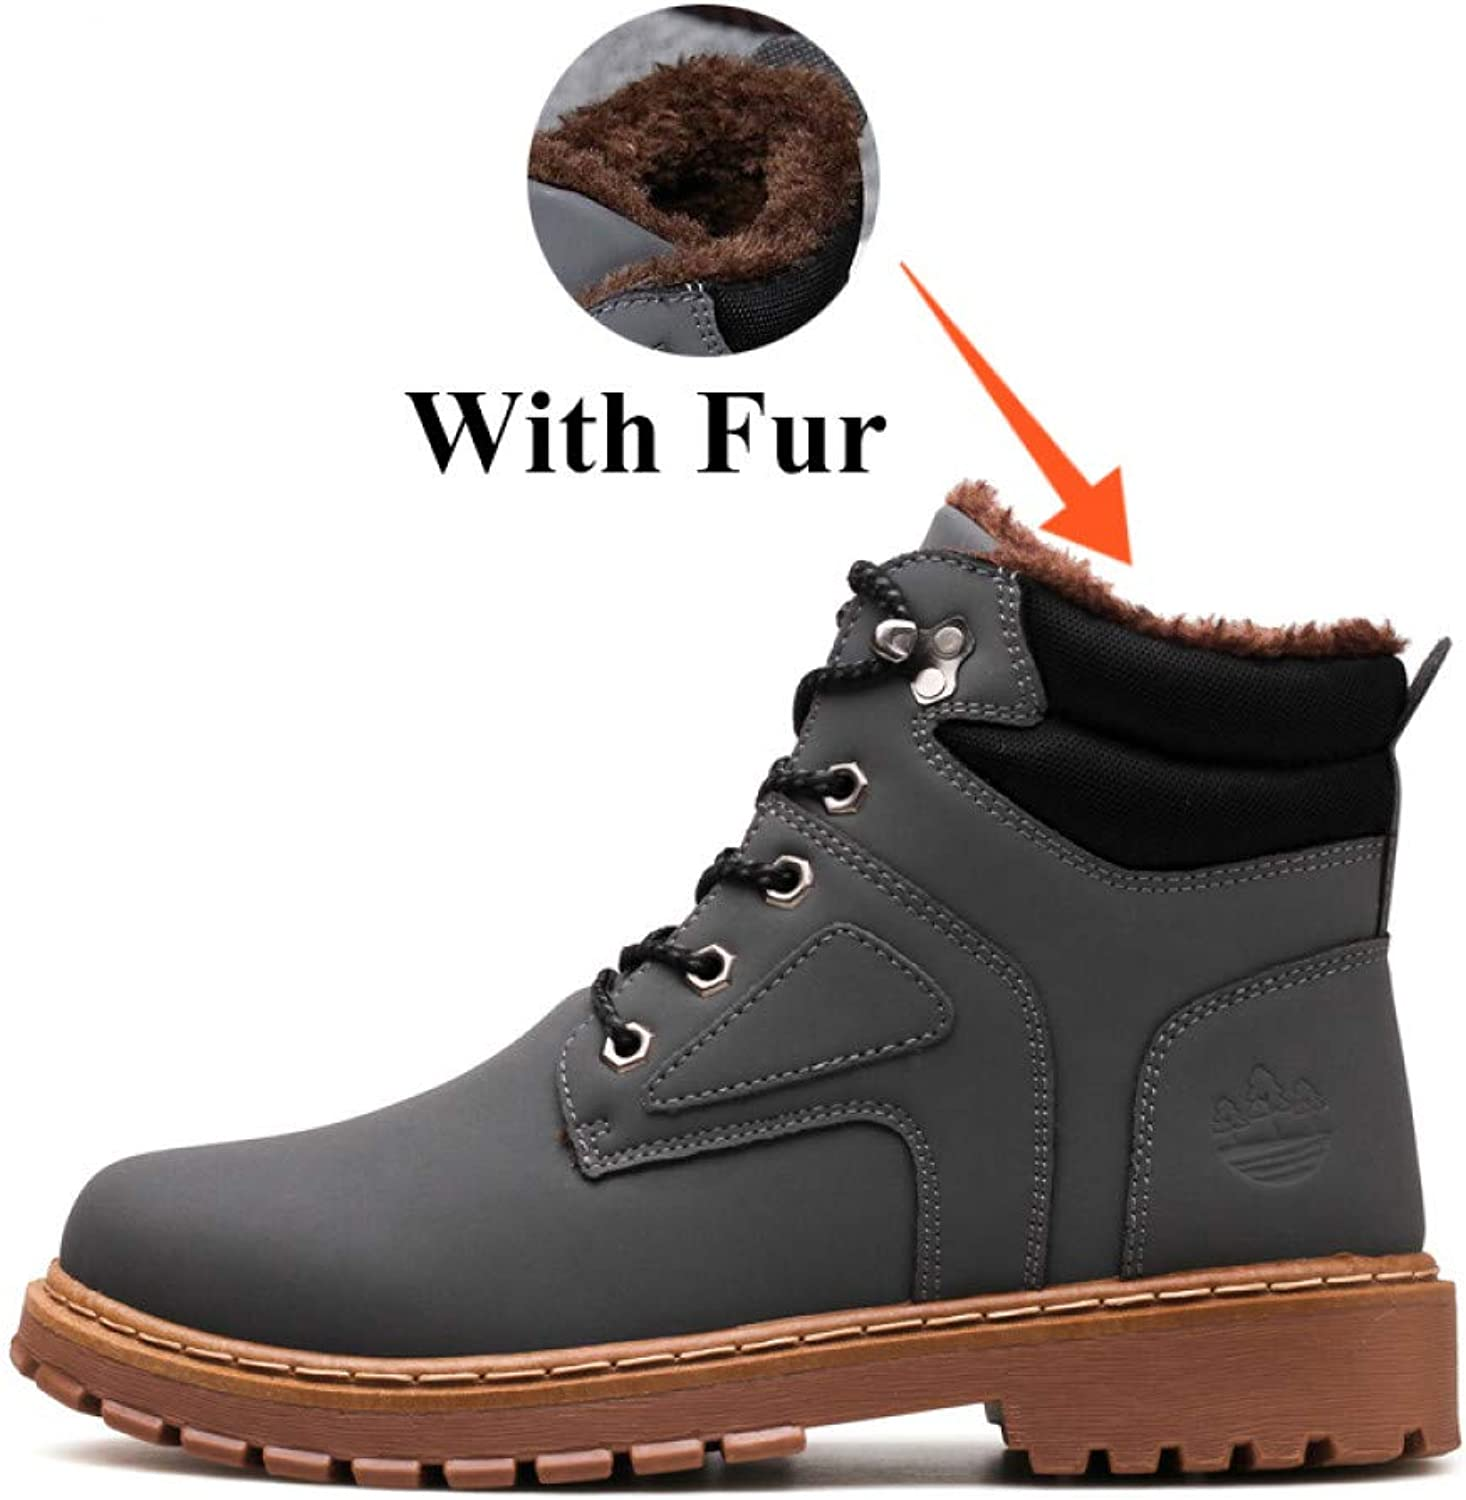 FHCGMX Winter With Warm Snow Boots For Men Sneakers shoes Adult Rubber Non Slip Casual Work Ankle Boots